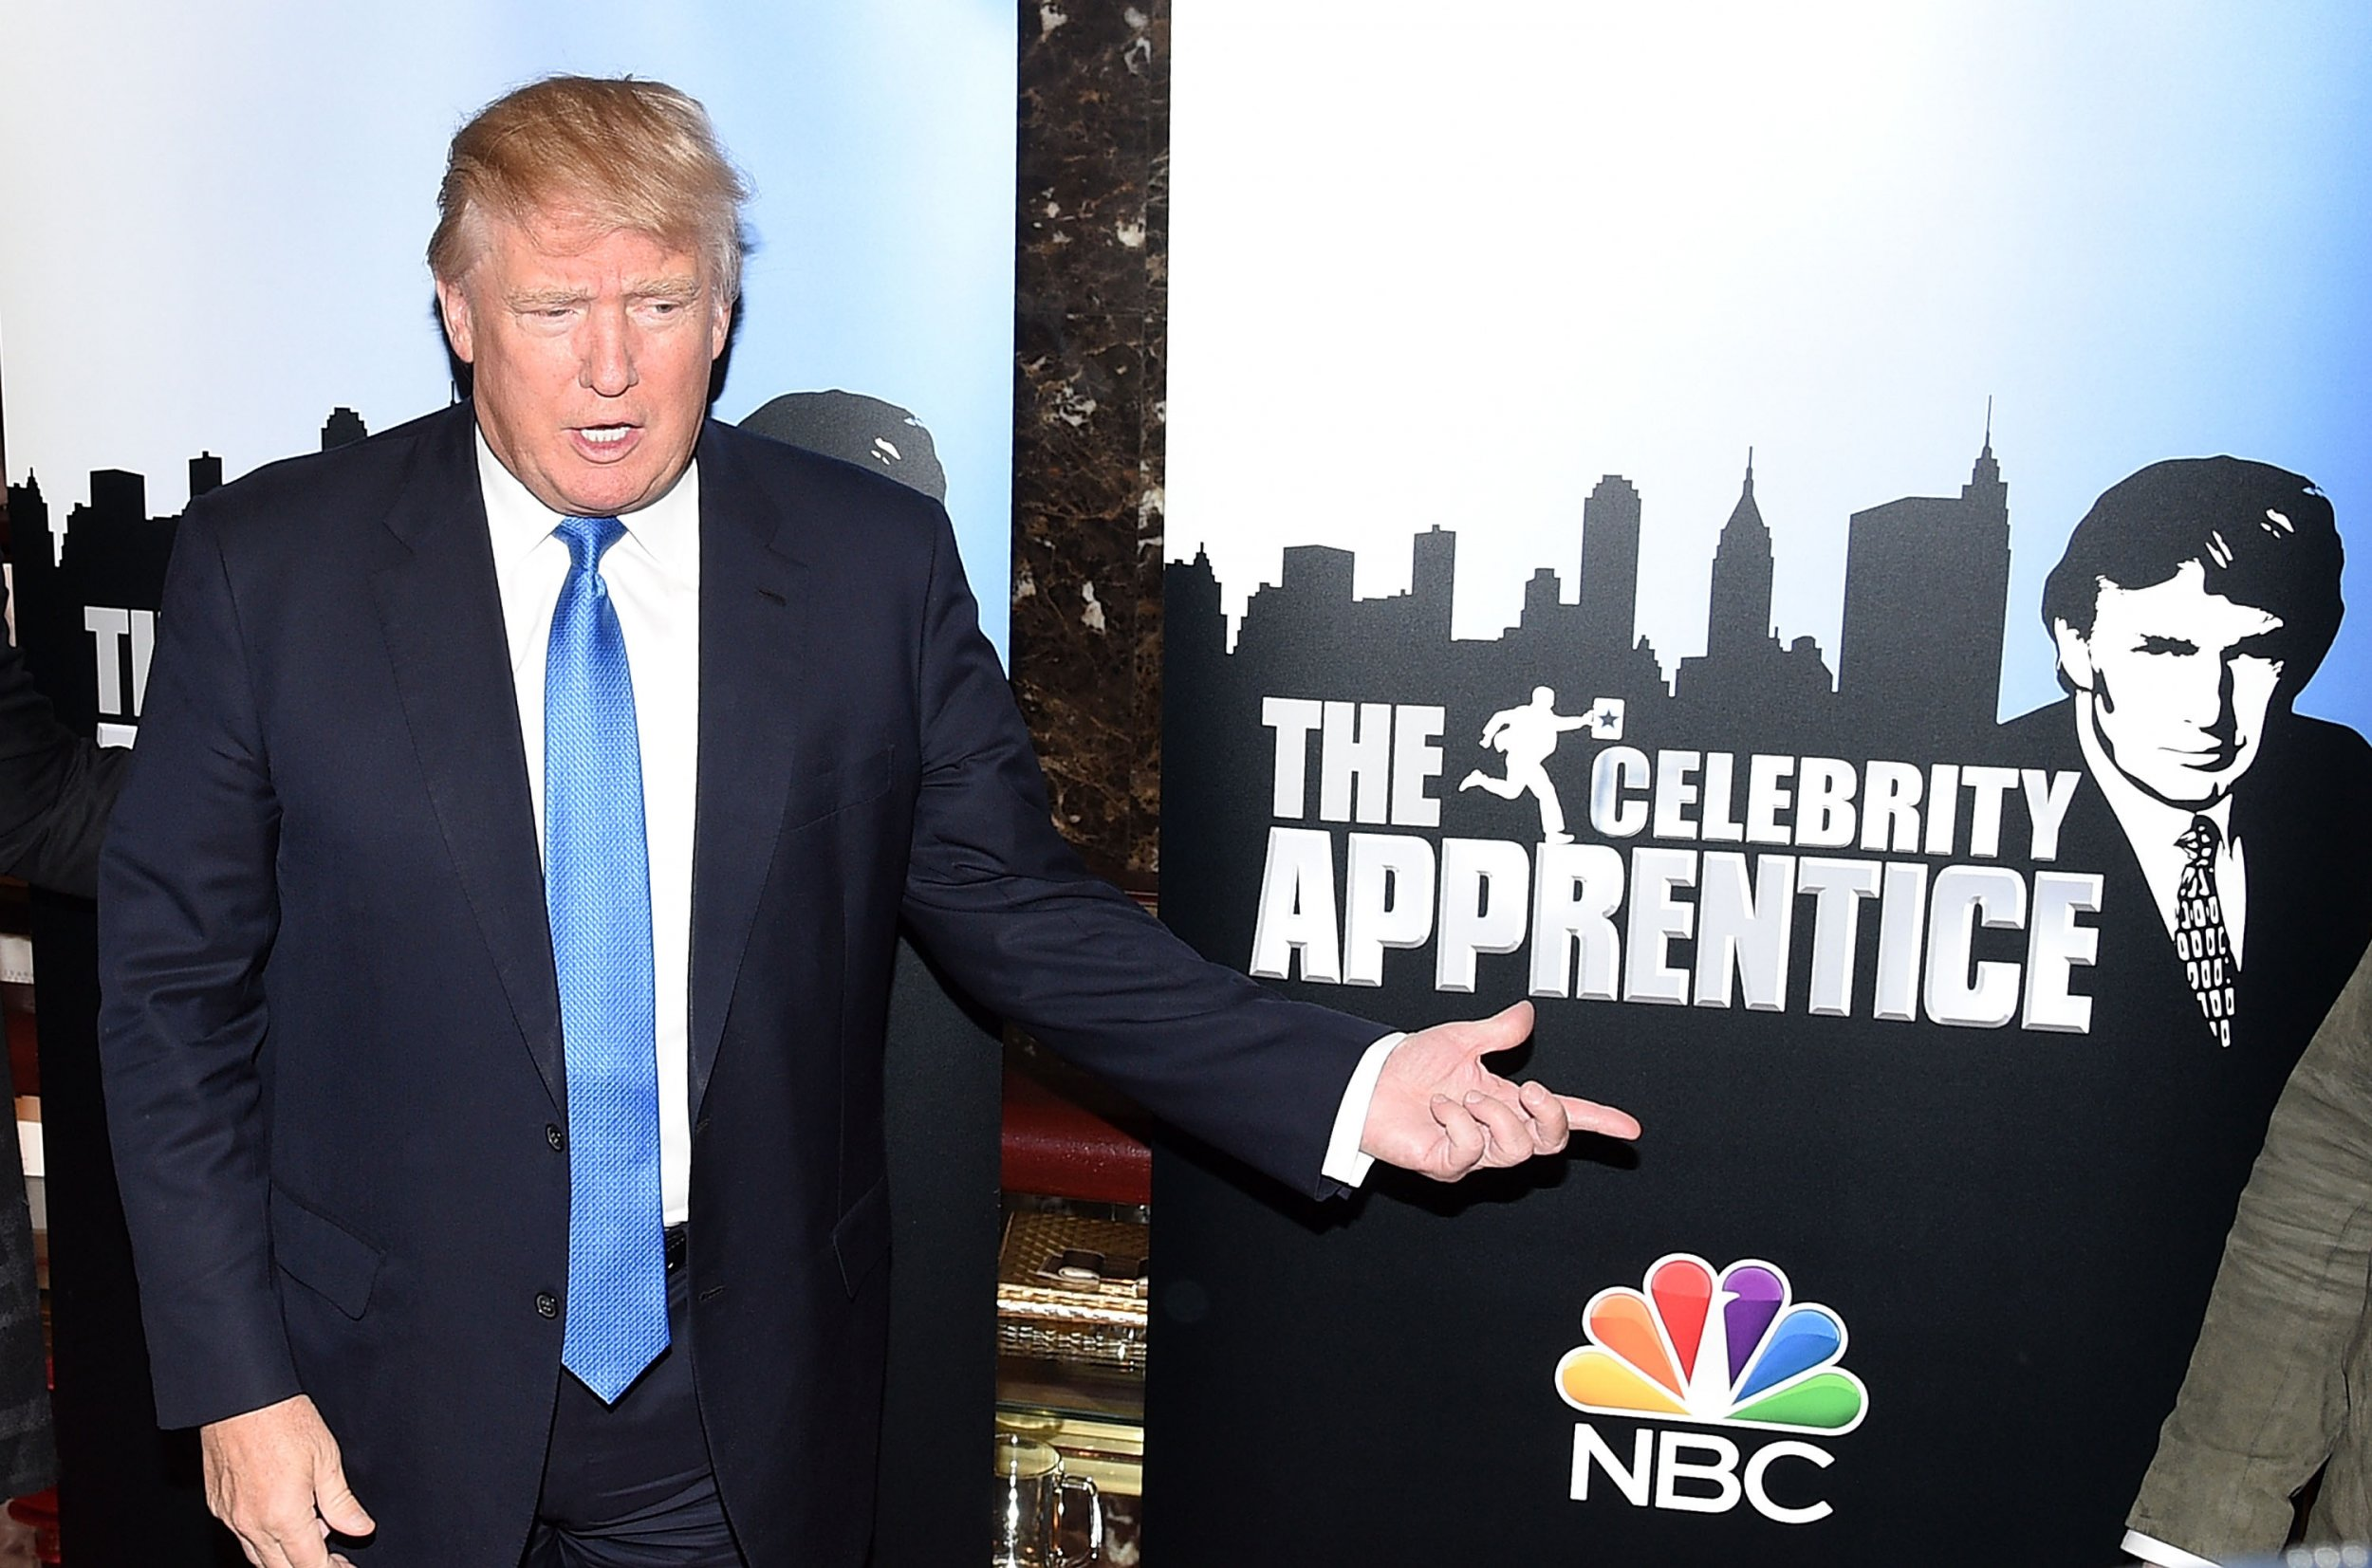 Trump Wanted to Pit White People Against Black People on 'The Apprentice'